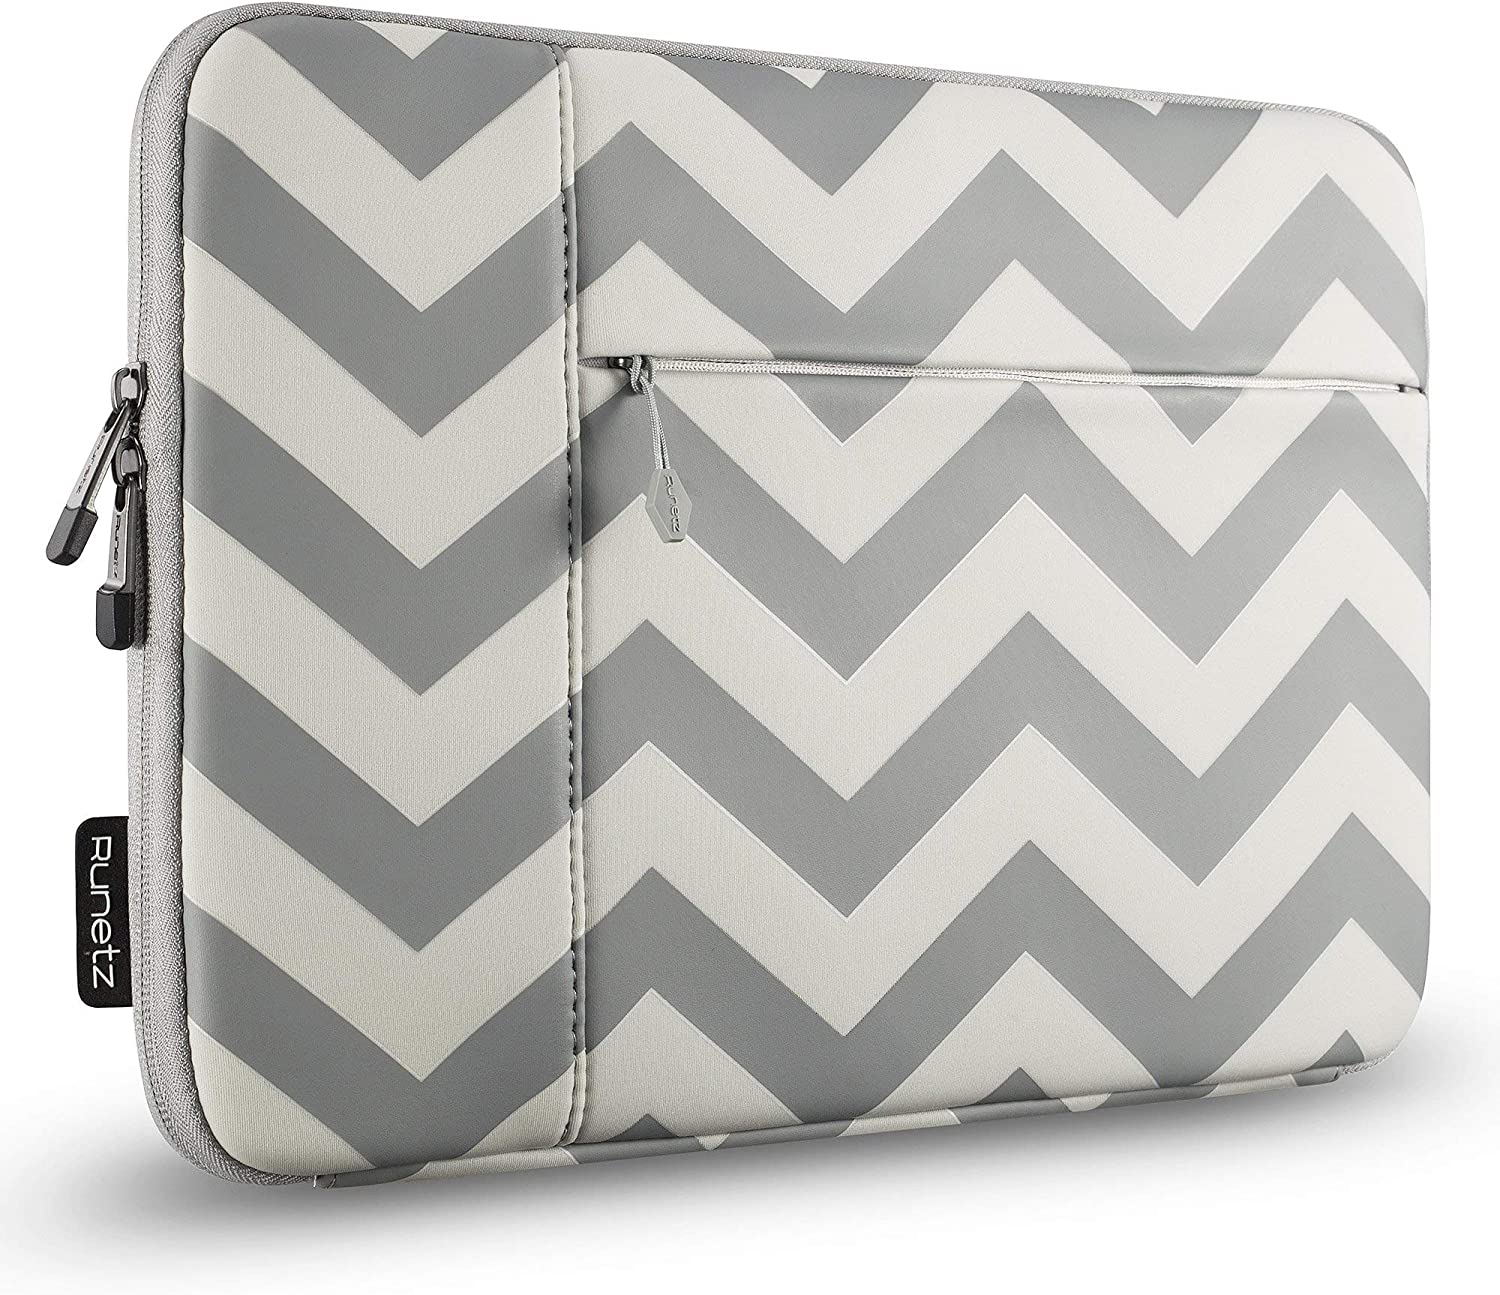 Runetz MacBook Pro 16 inch Sleeve Neoprene 2020 2019 Laptop Sleeve Notebook Cover Bag Case with Accessory Pocket for New 16 inch MacBook Pro, Chevron Gray